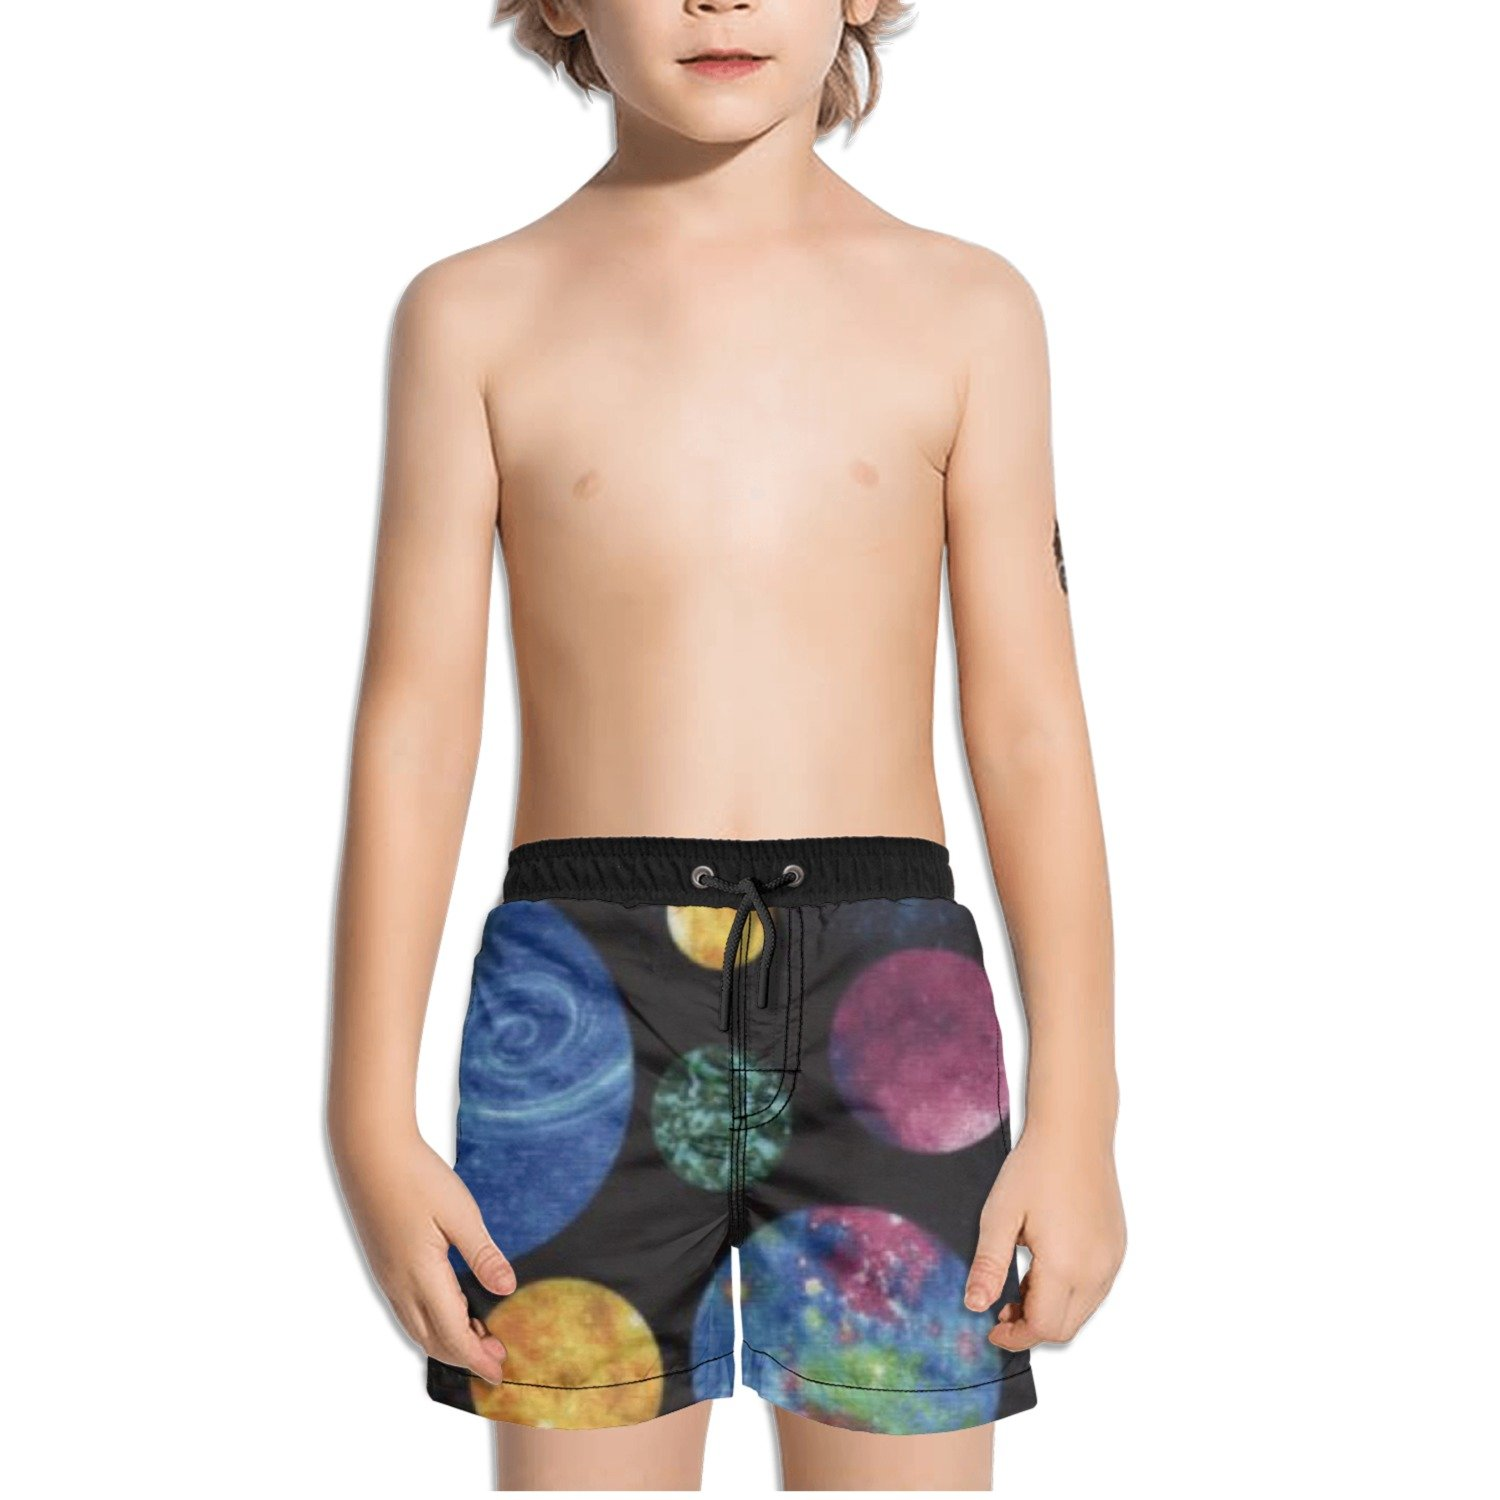 Ouxioaz Boys Swim Trunk Out of This World Multi Planets Planet Beach Board Shorts